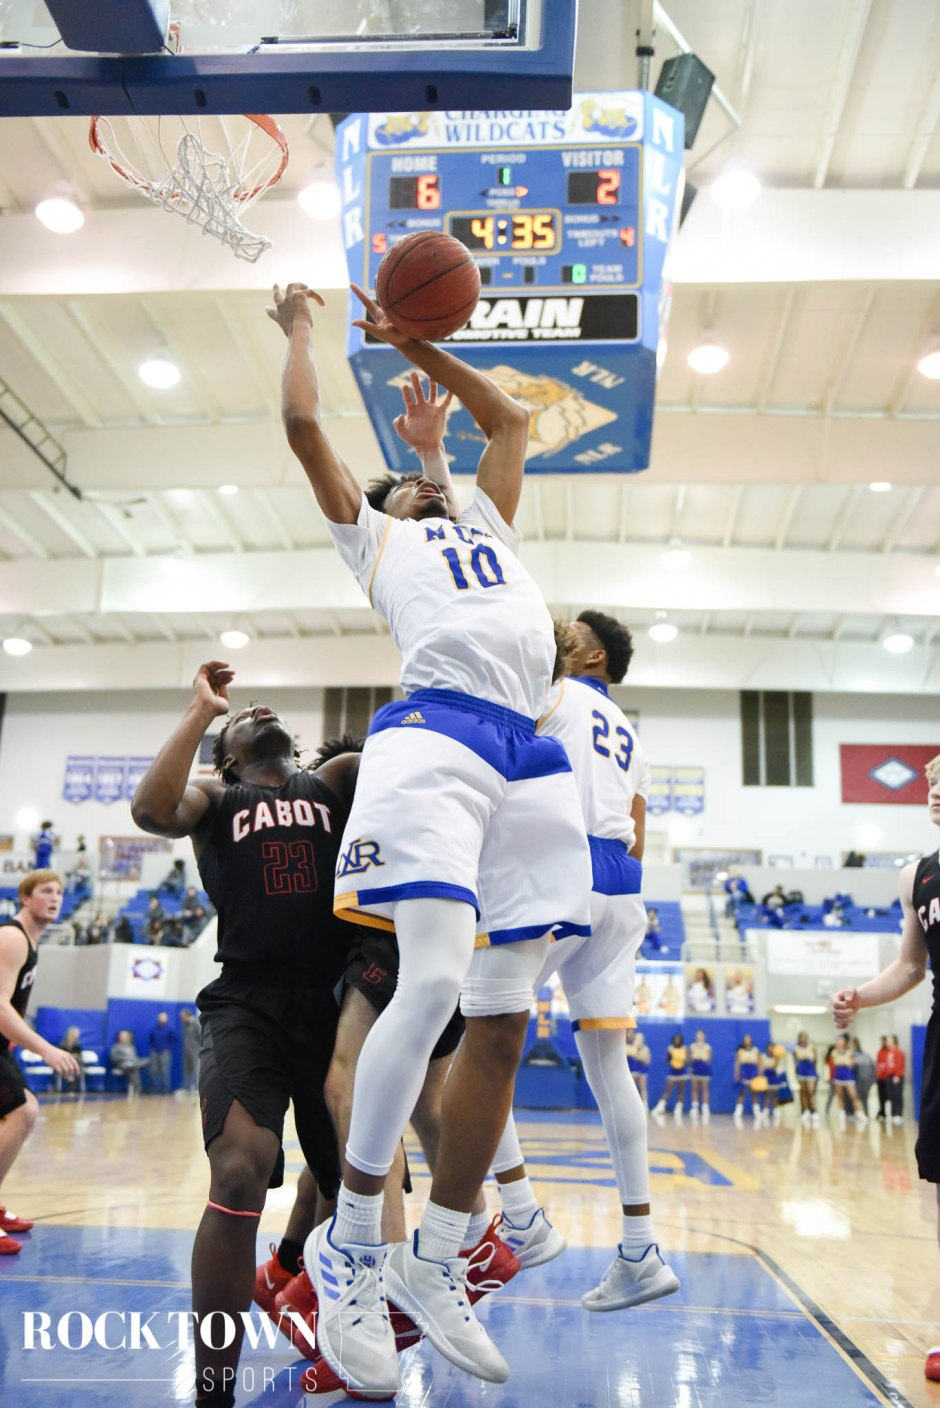 nlr_cabot_basketball_2019_(int)-160